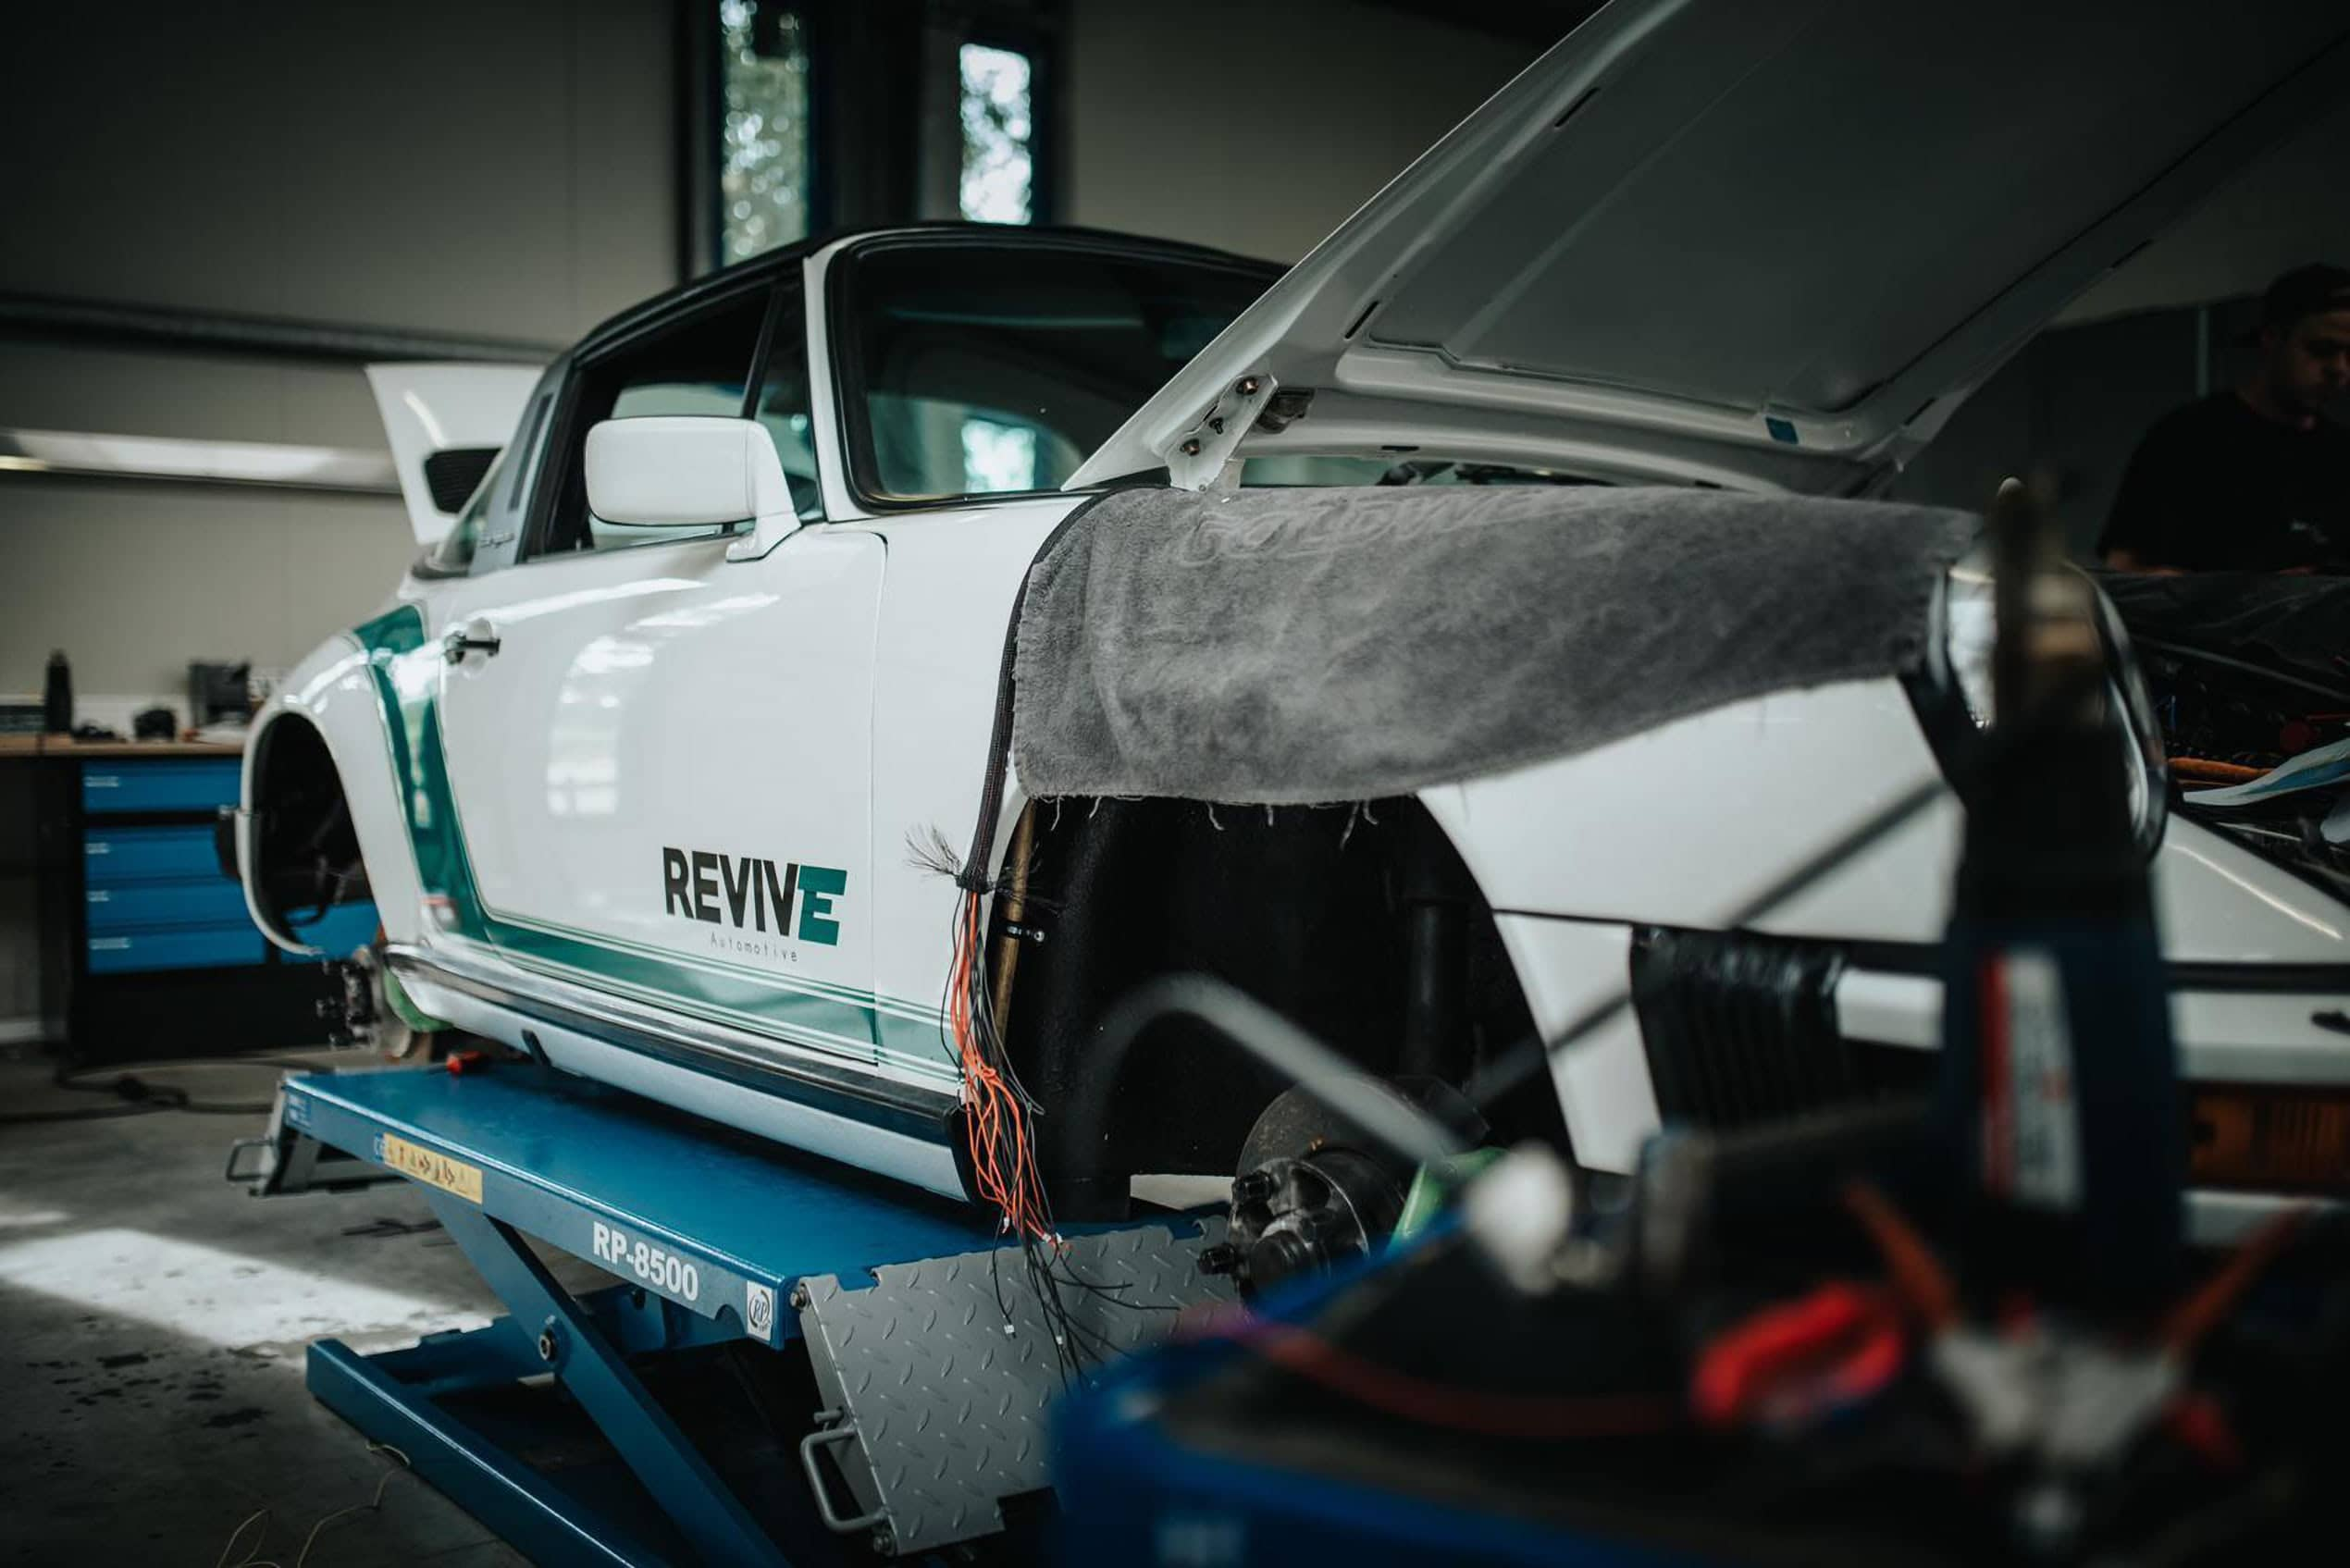 Revive ONE garage lift